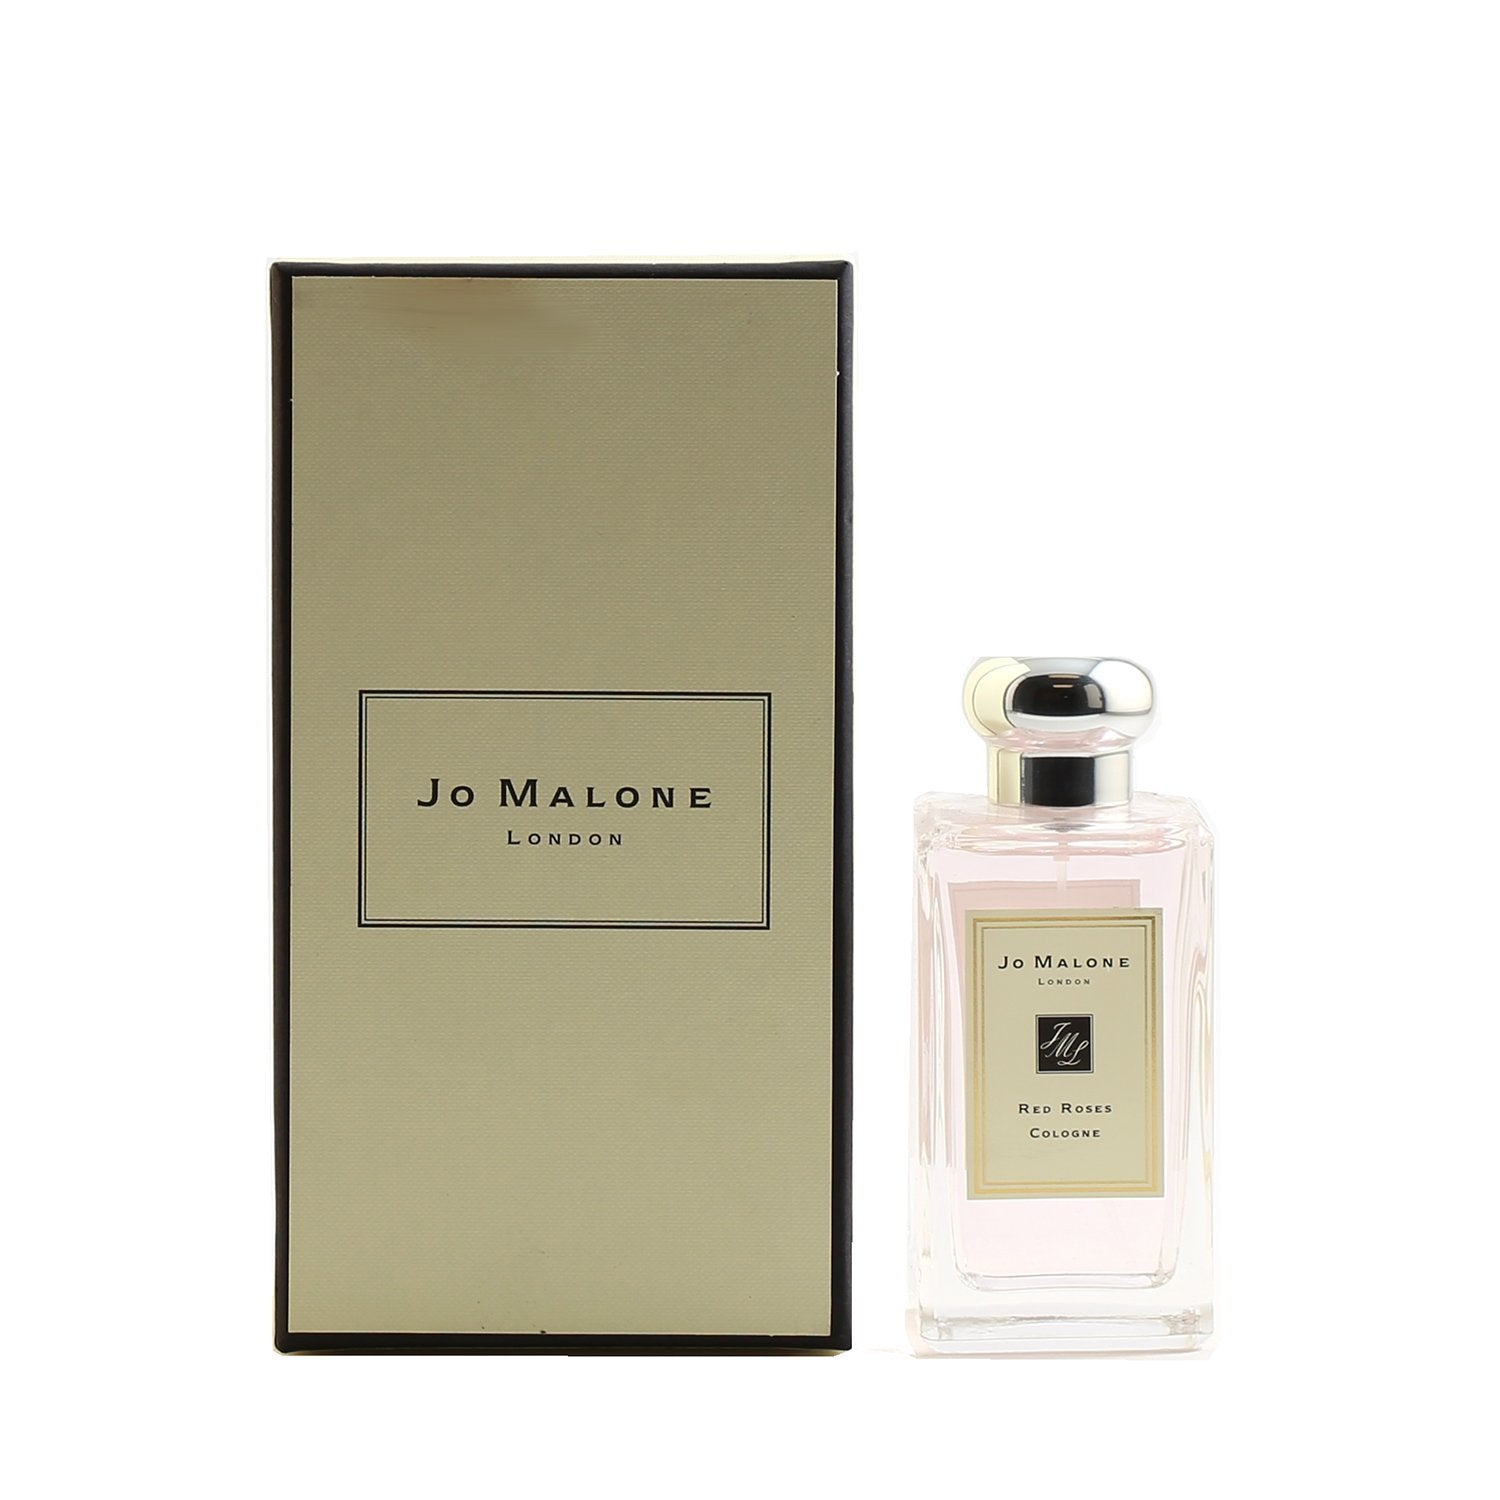 Perfume - JO MALONE RED ROSES FOR WOMEN - COLOGNE